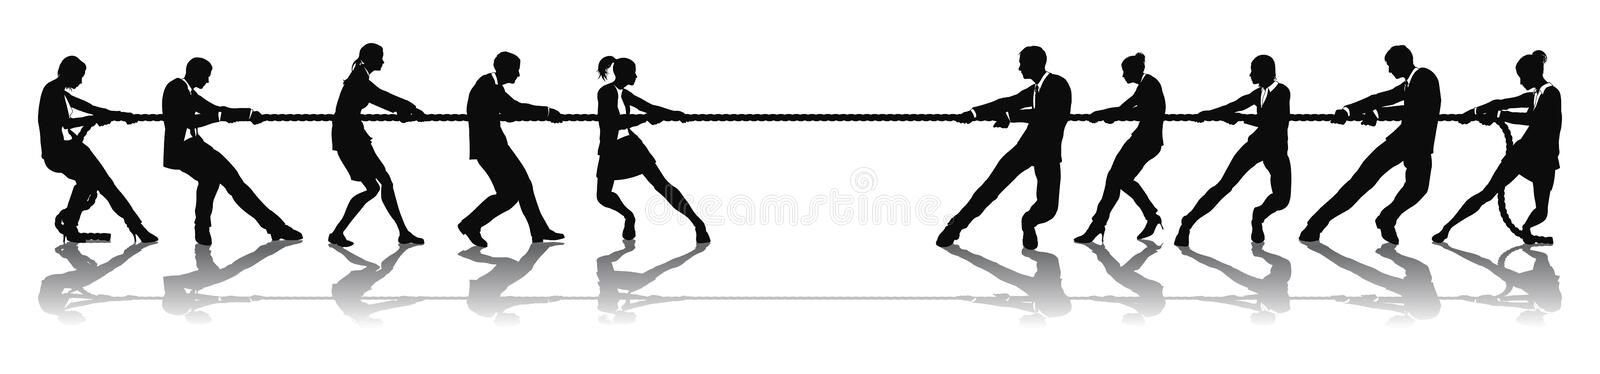 Download Business People Tug Of War Competition Stock Vector - Image: 19565137